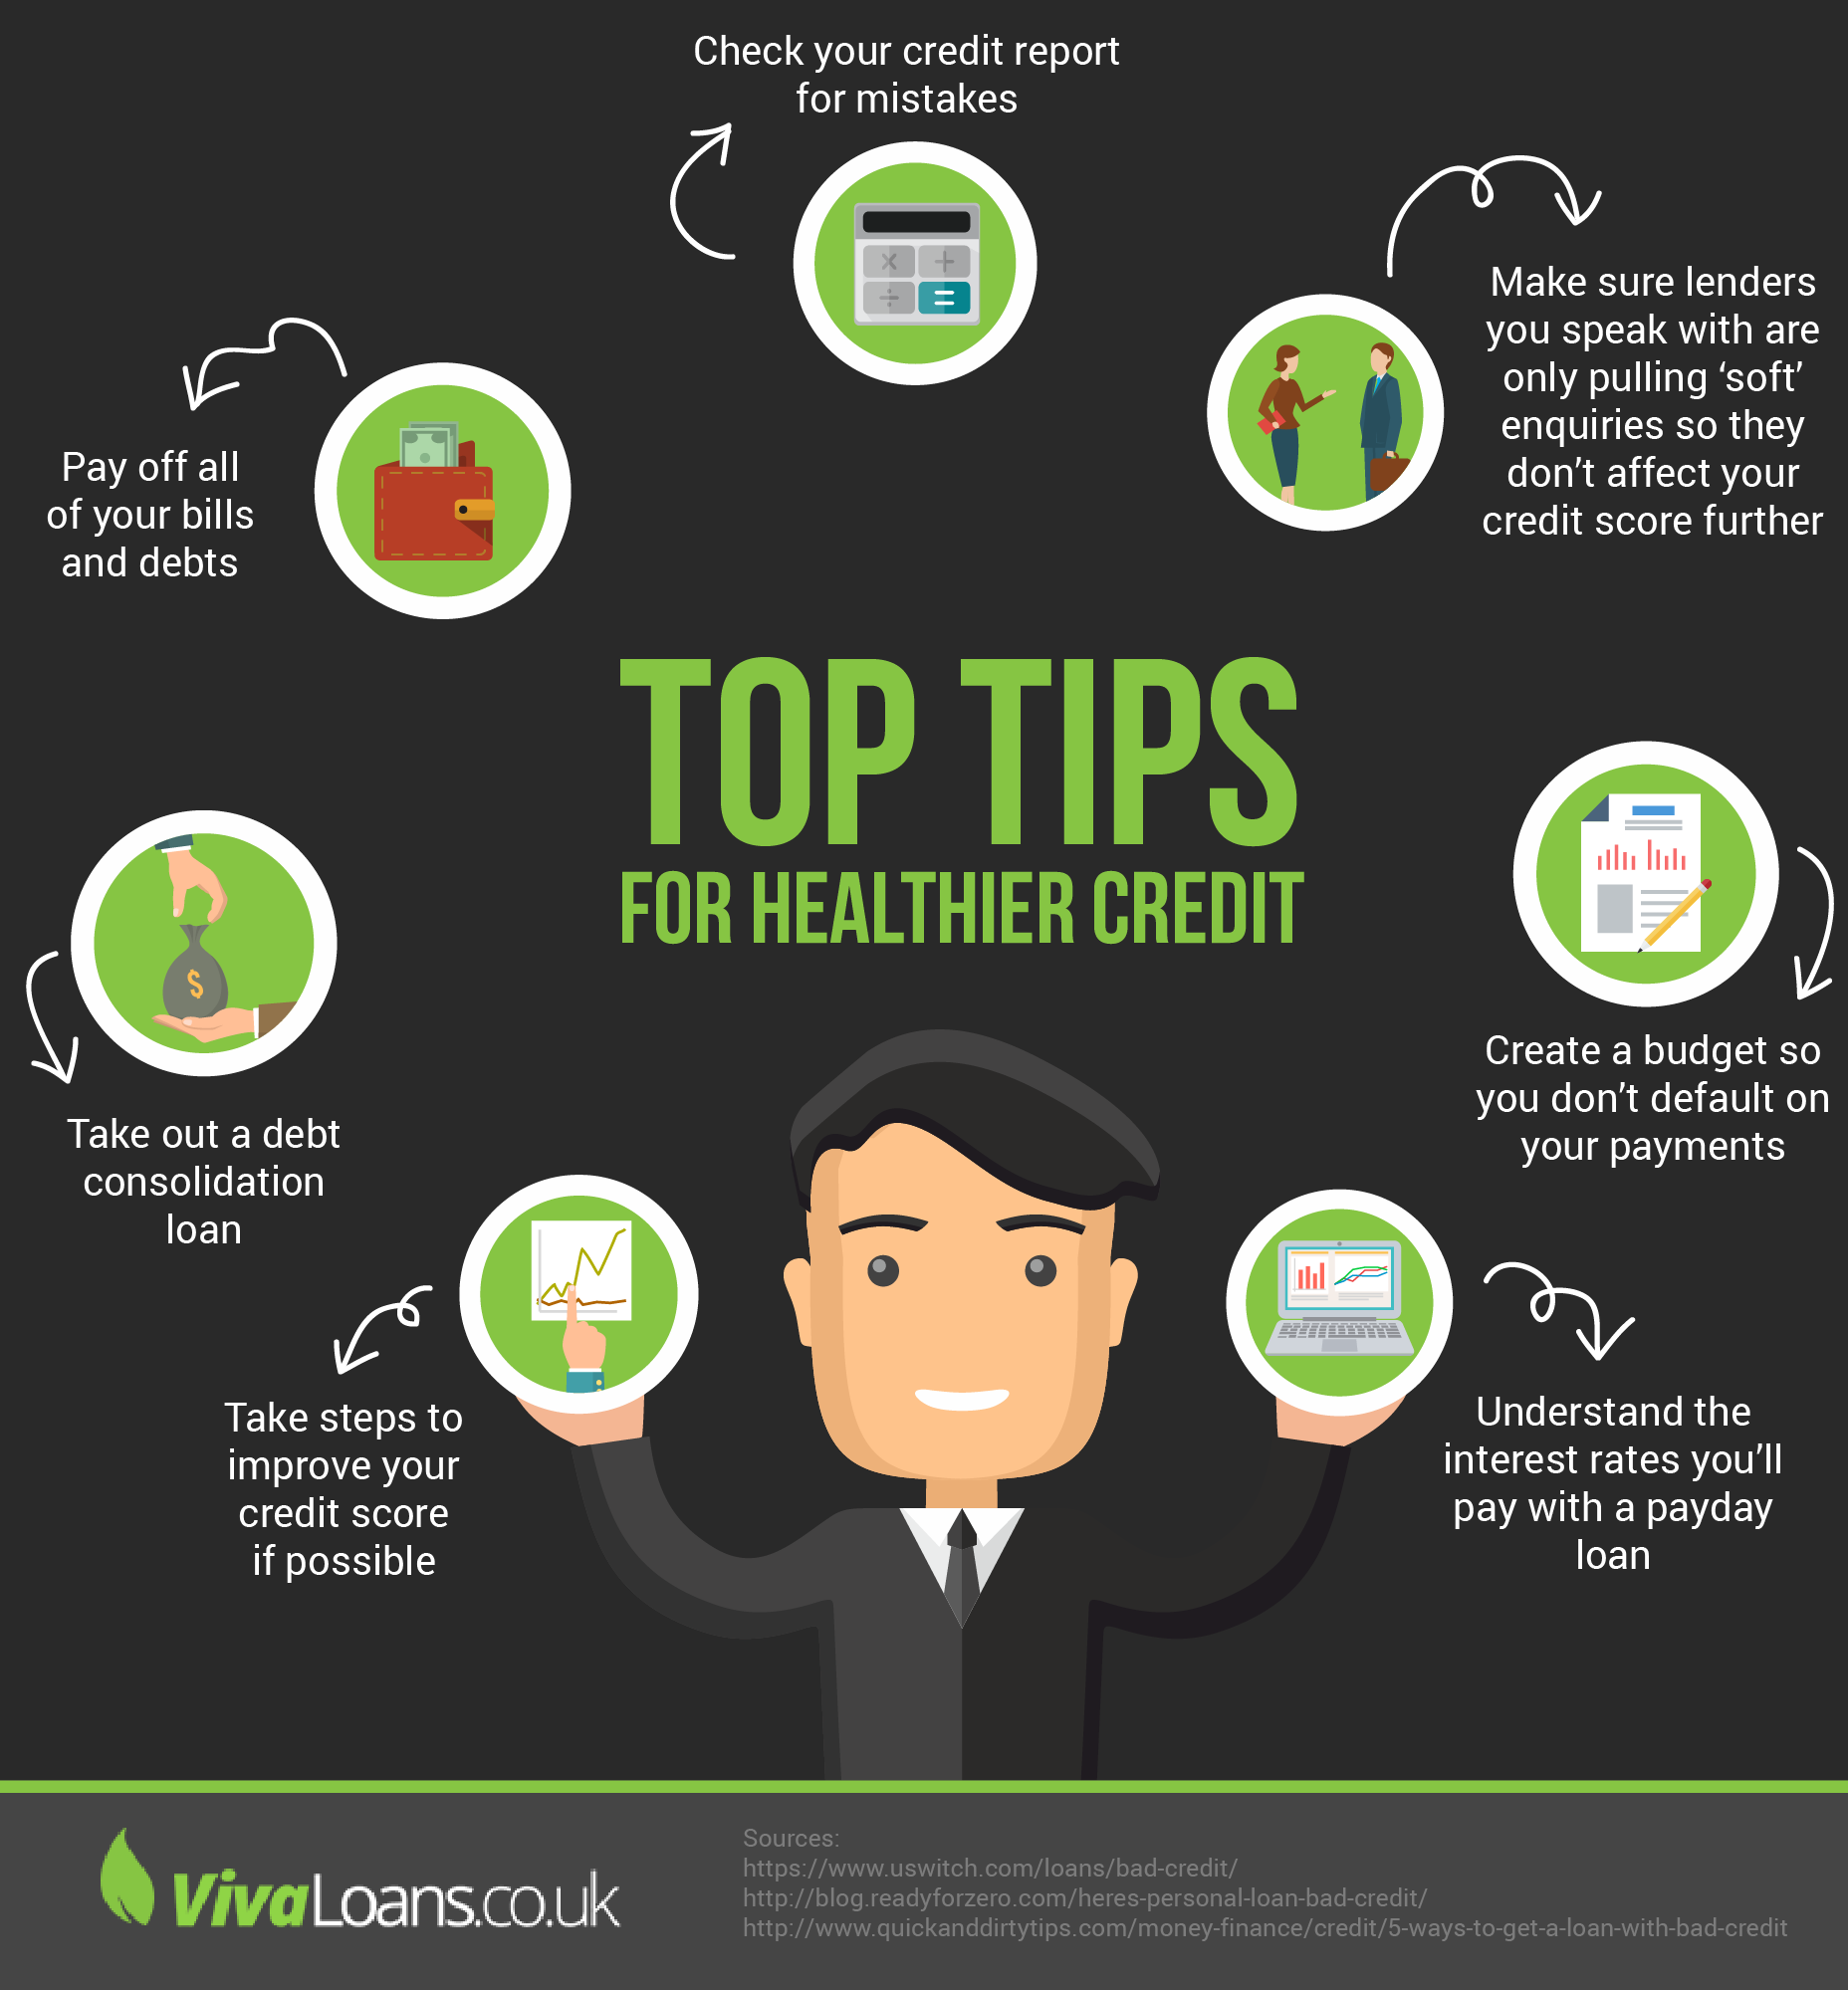 How To Have Healthy Credit - Infographic